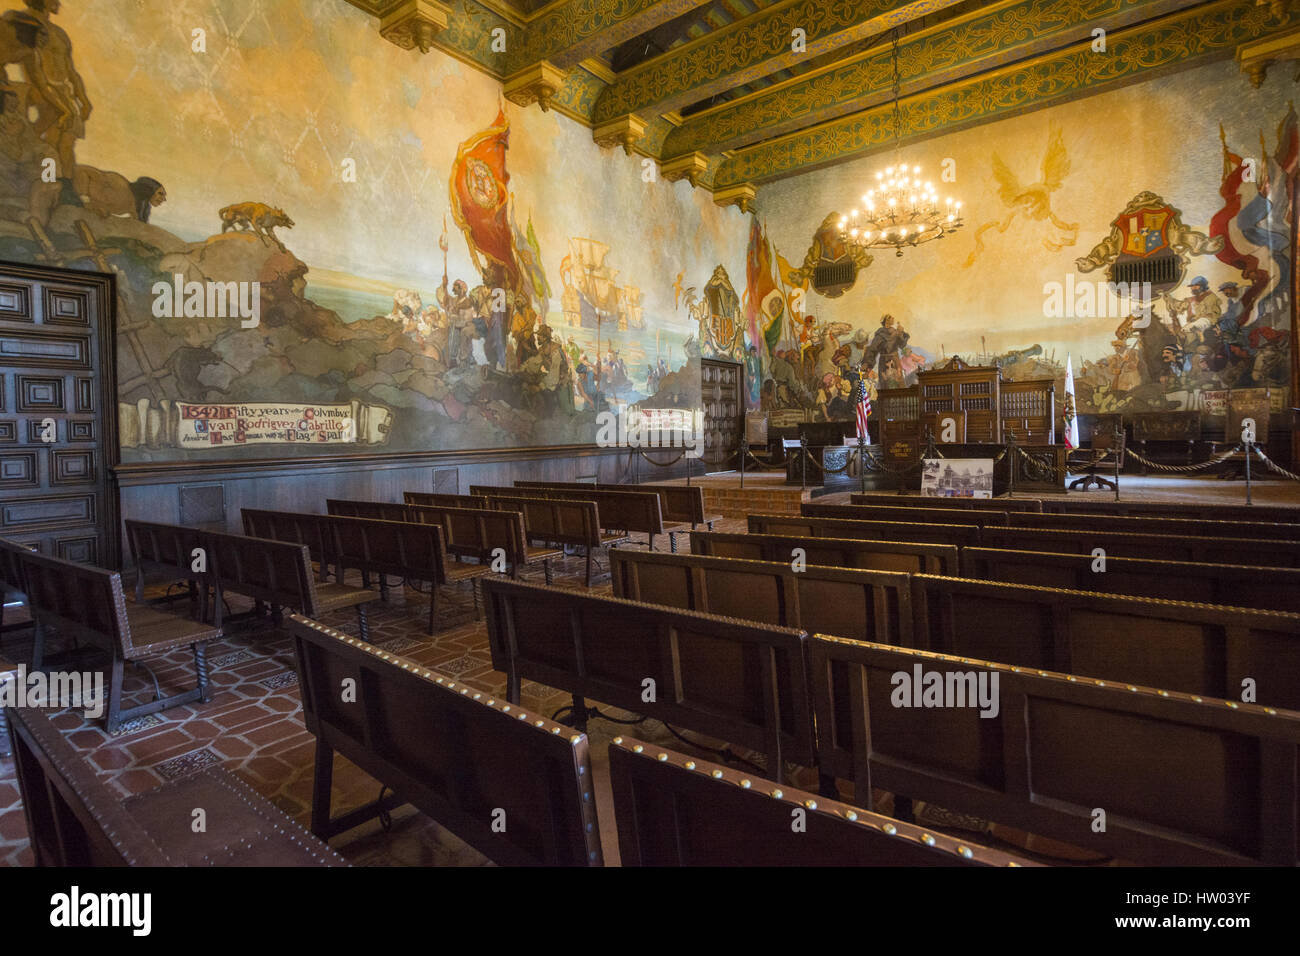 Mural Room Santa Barbara Courthouse